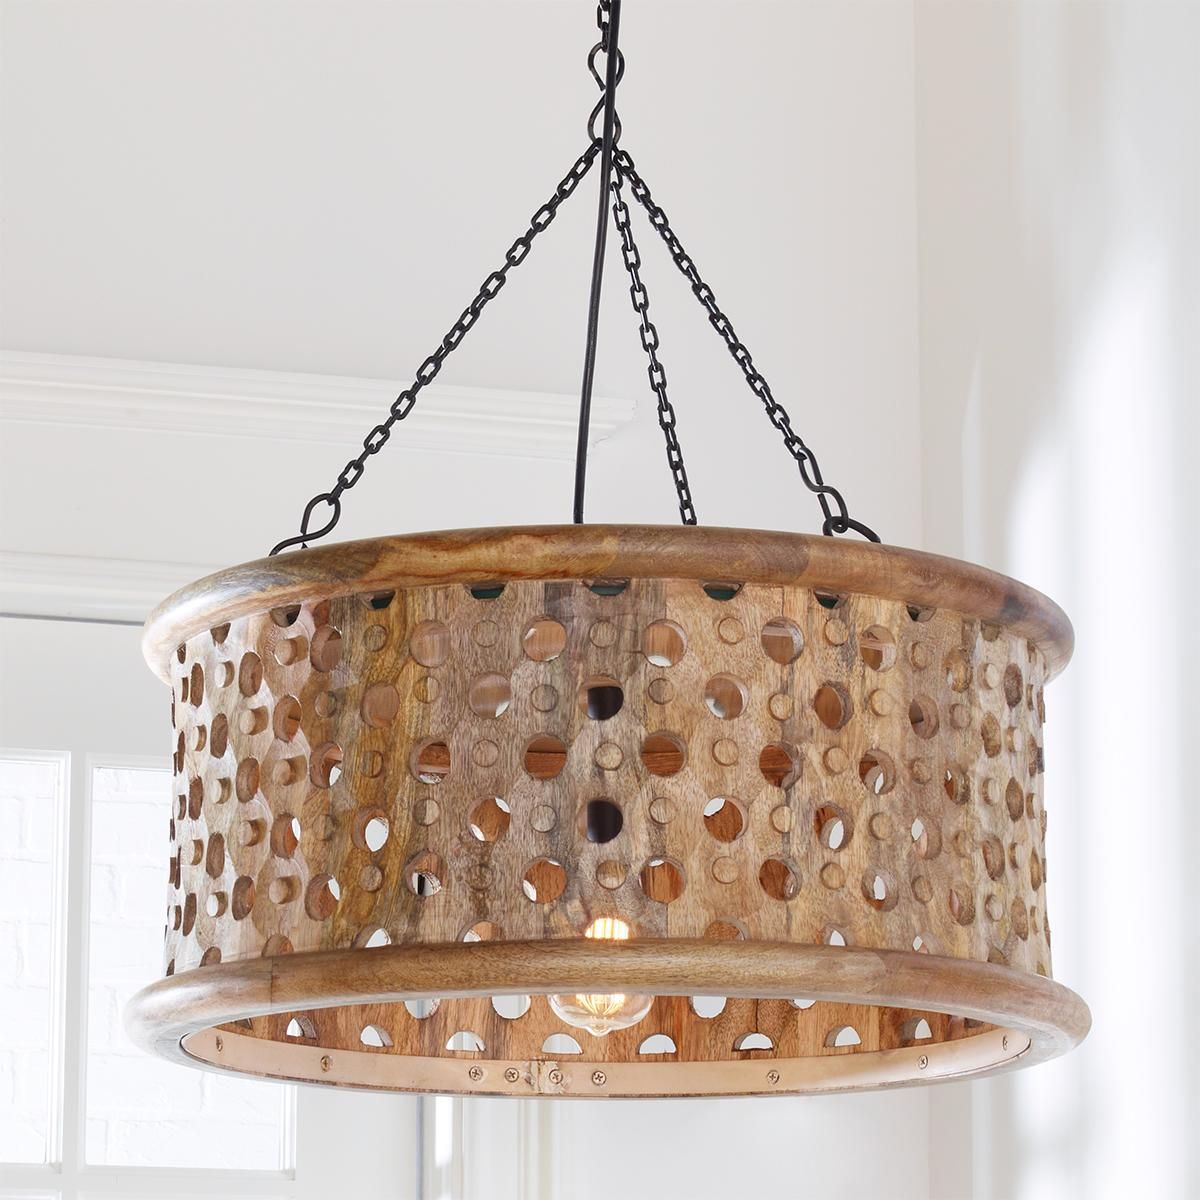 Carved Wood Drum Shade Pendant Oversized Pendant Light Drum Light Drum Shade